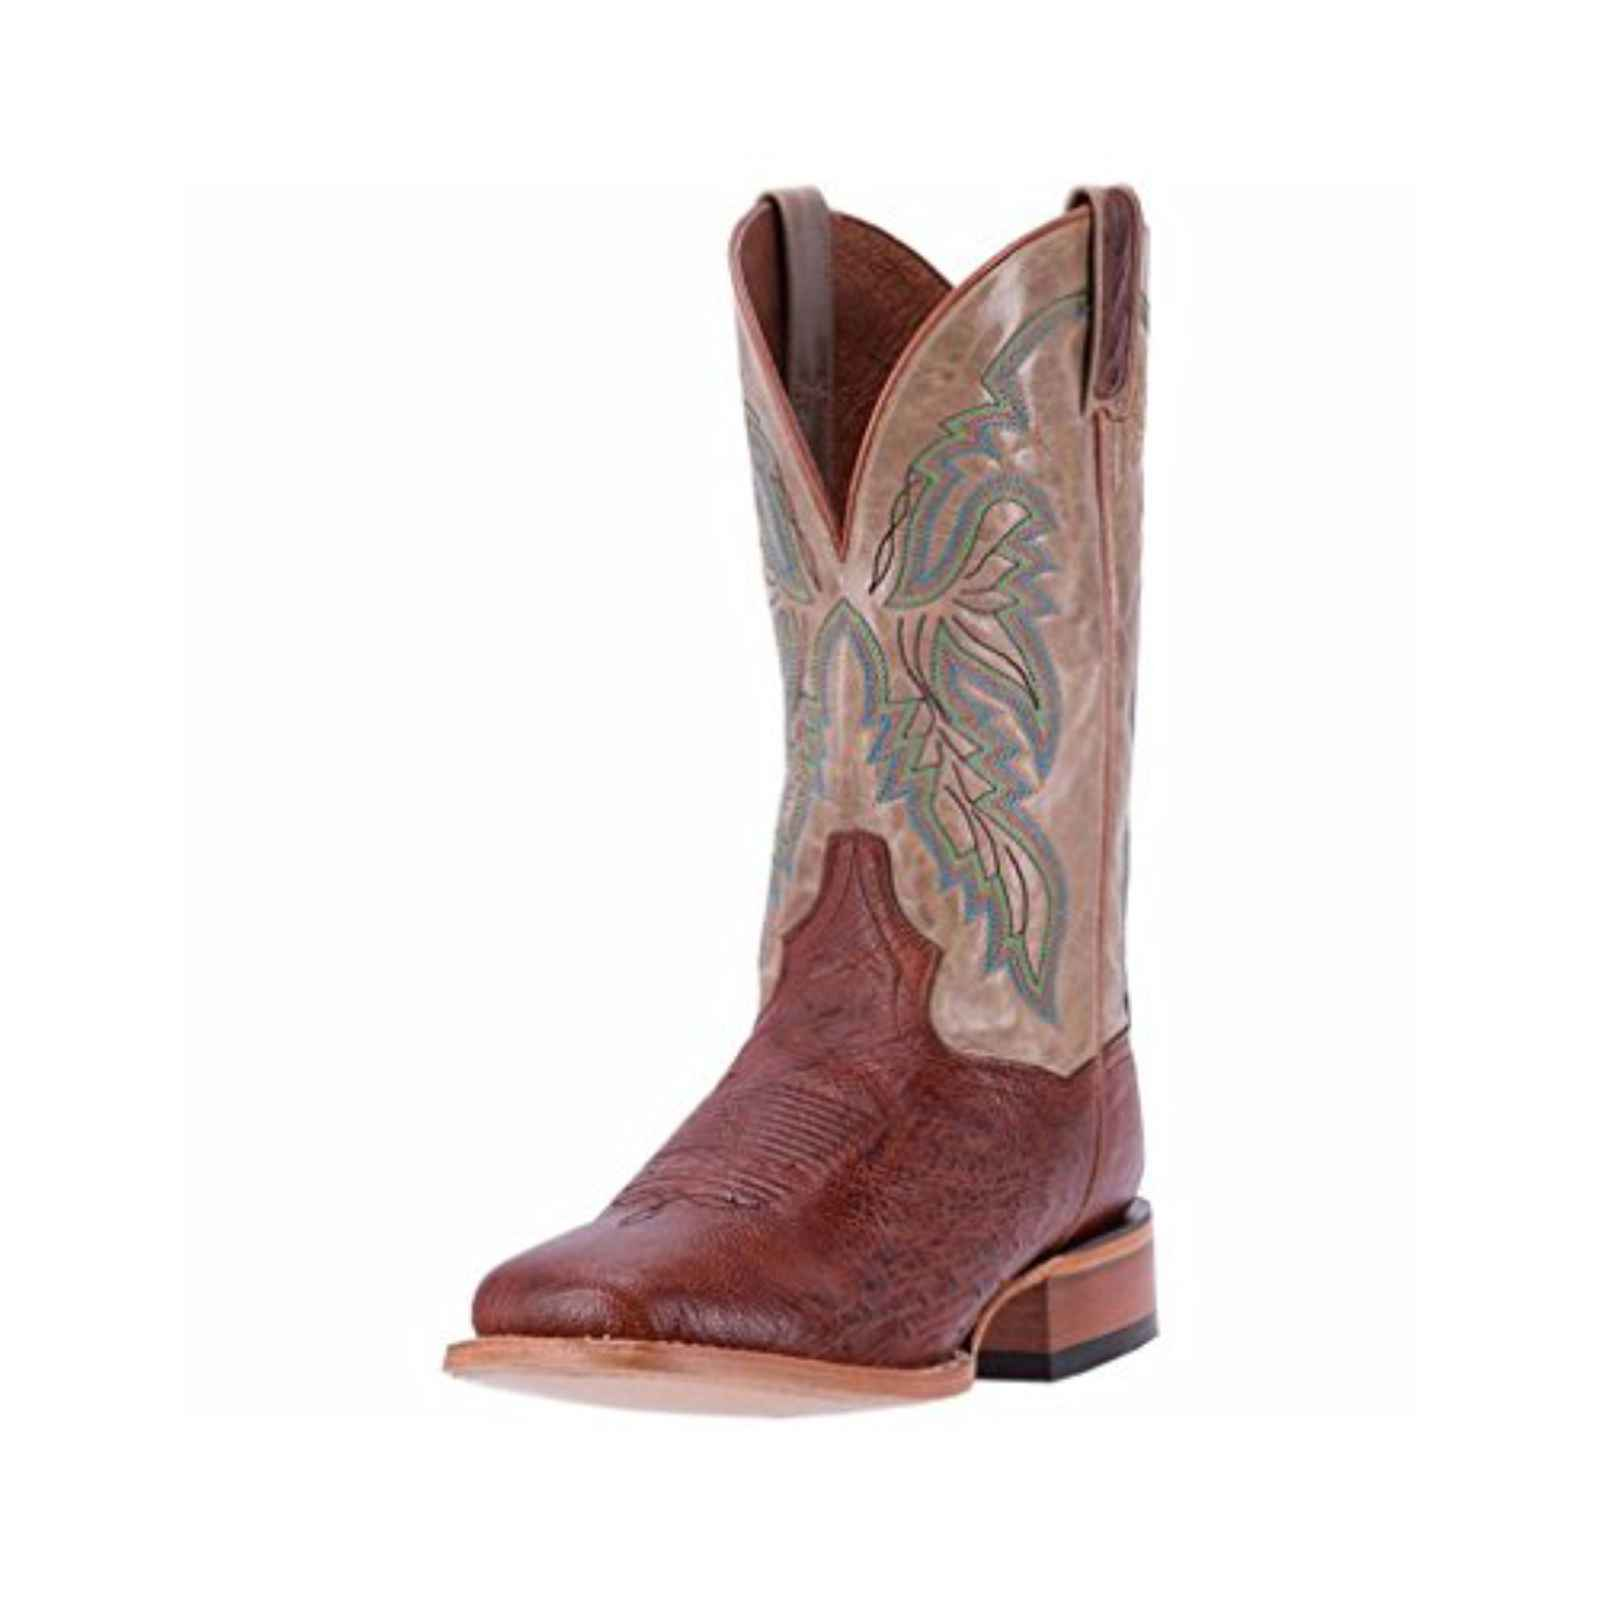 Dan Post Men's Bone Callahan Ostrich Skin Cowboy Boots,DPP5211 by DAN POST